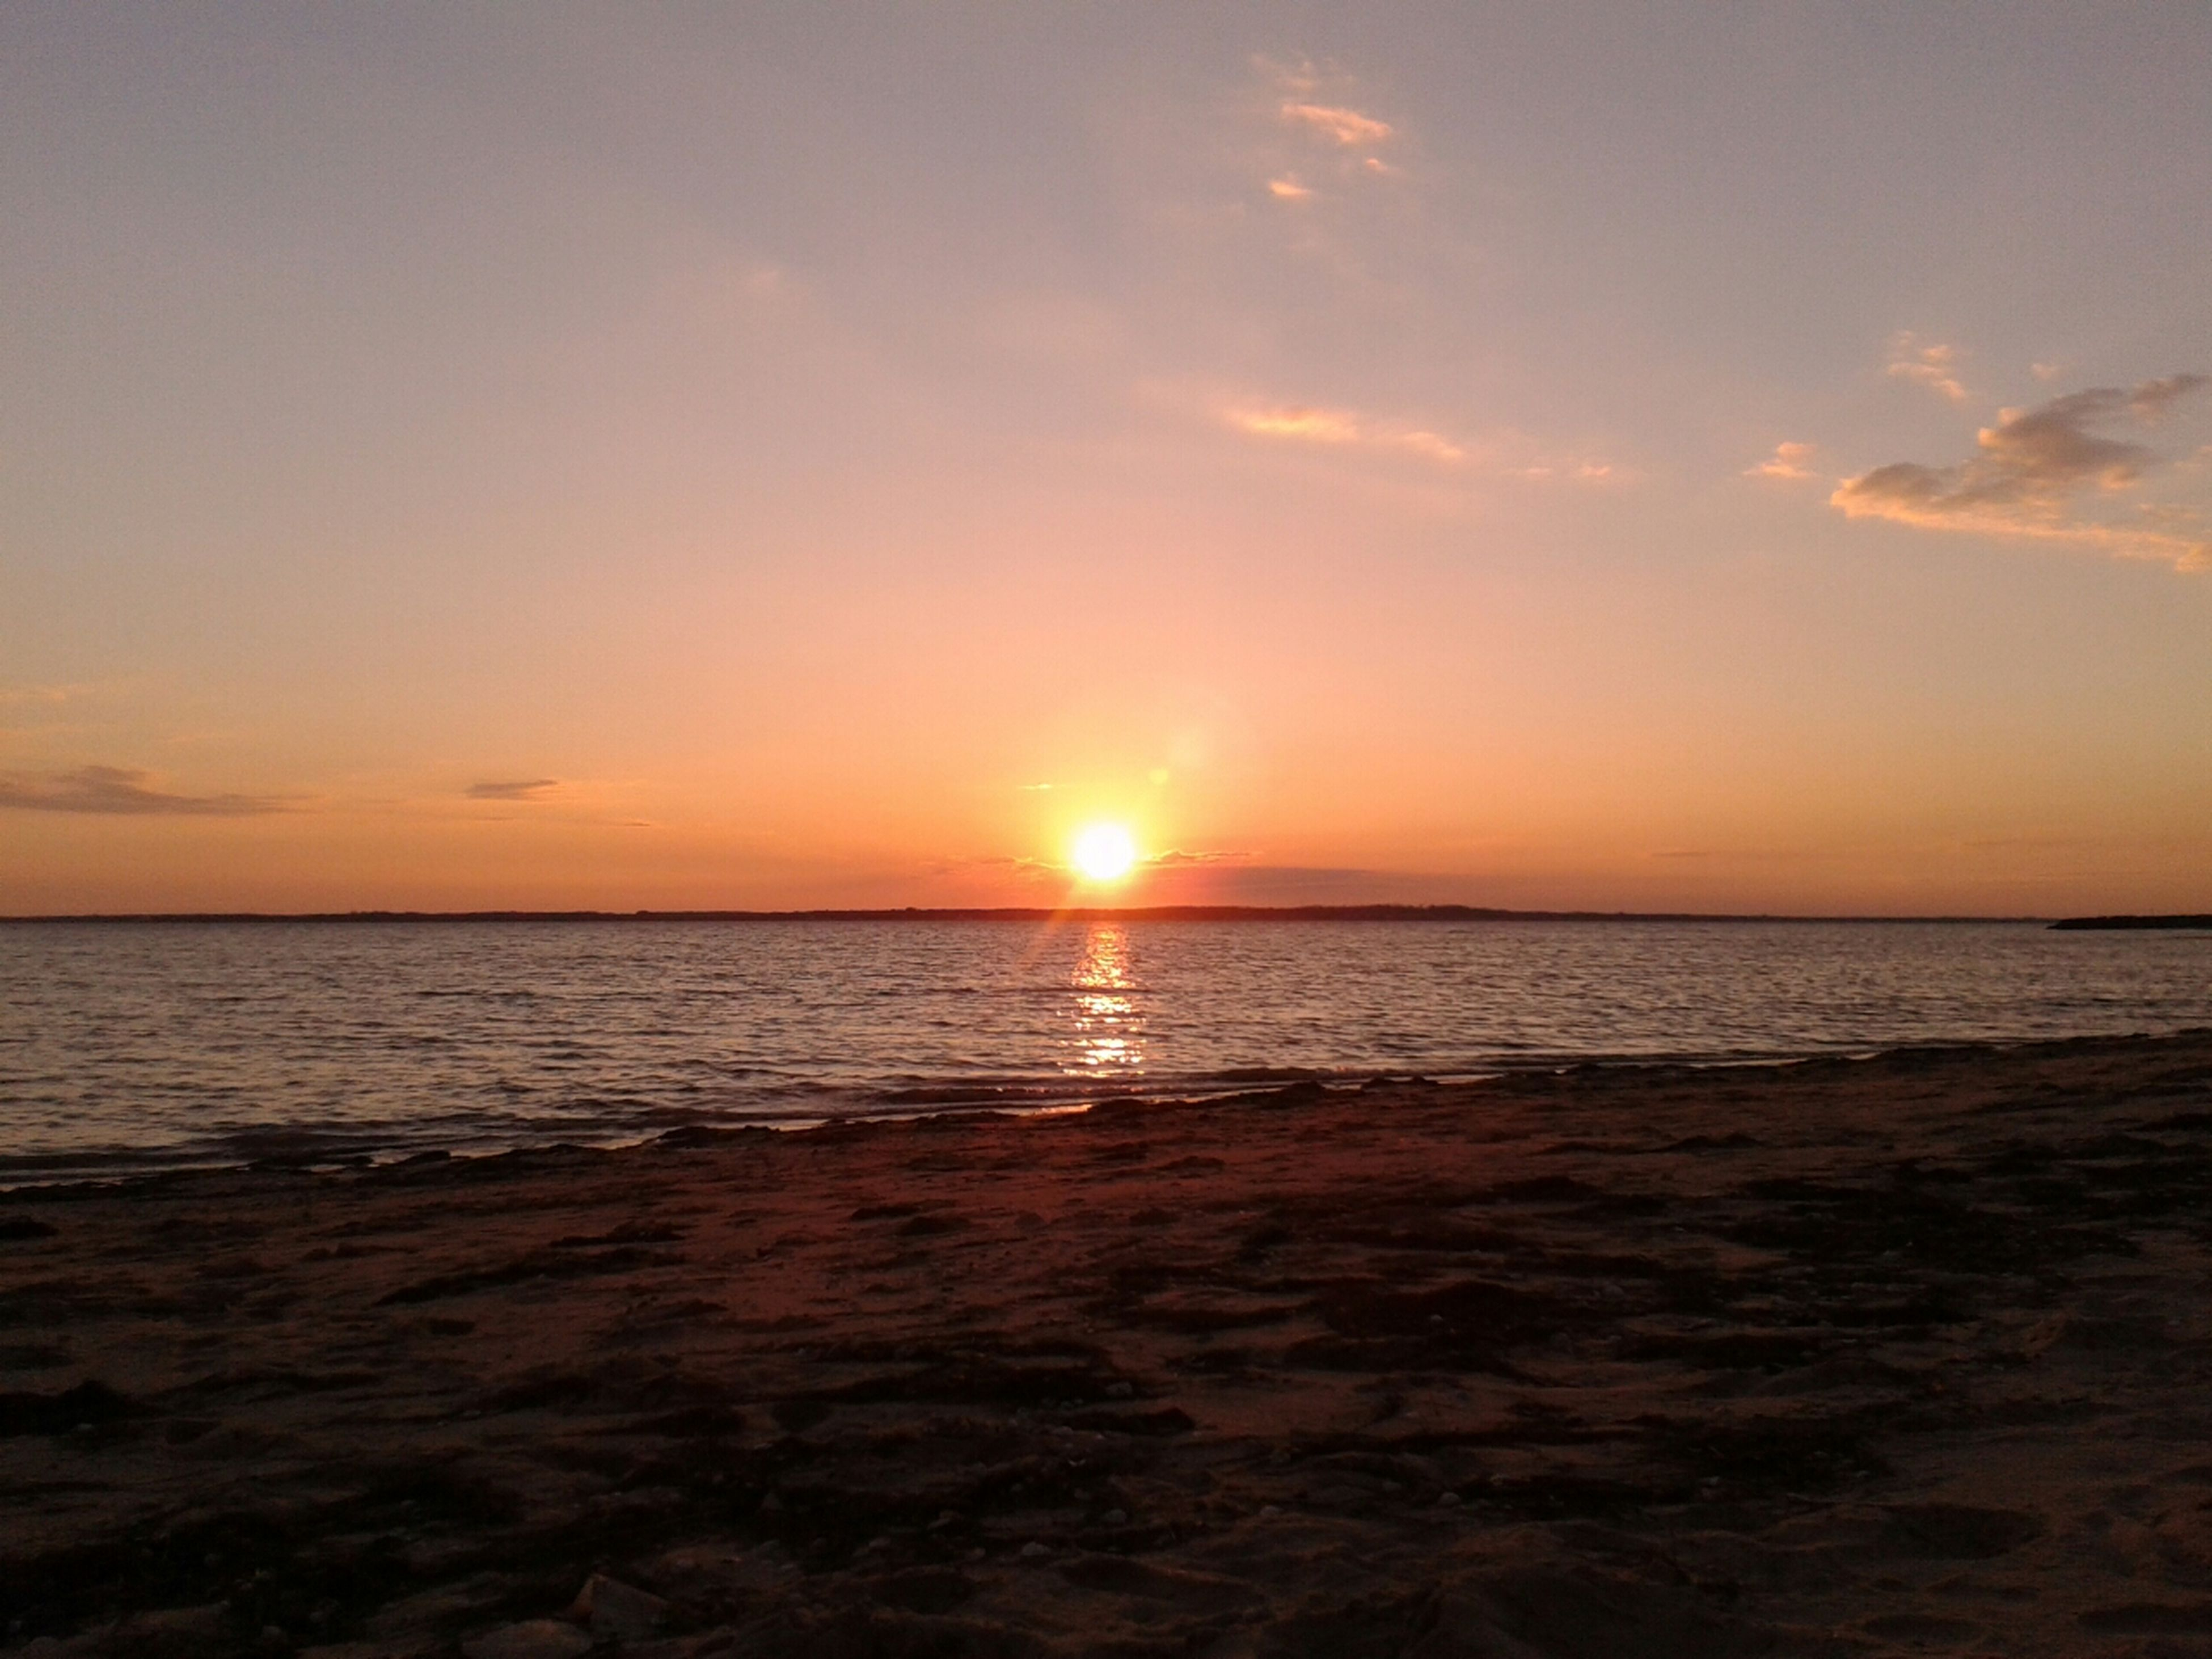 sunset, sea, sun, horizon over water, water, scenics, tranquil scene, beauty in nature, tranquility, orange color, beach, sky, idyllic, shore, nature, reflection, sunlight, cloud - sky, remote, outdoors